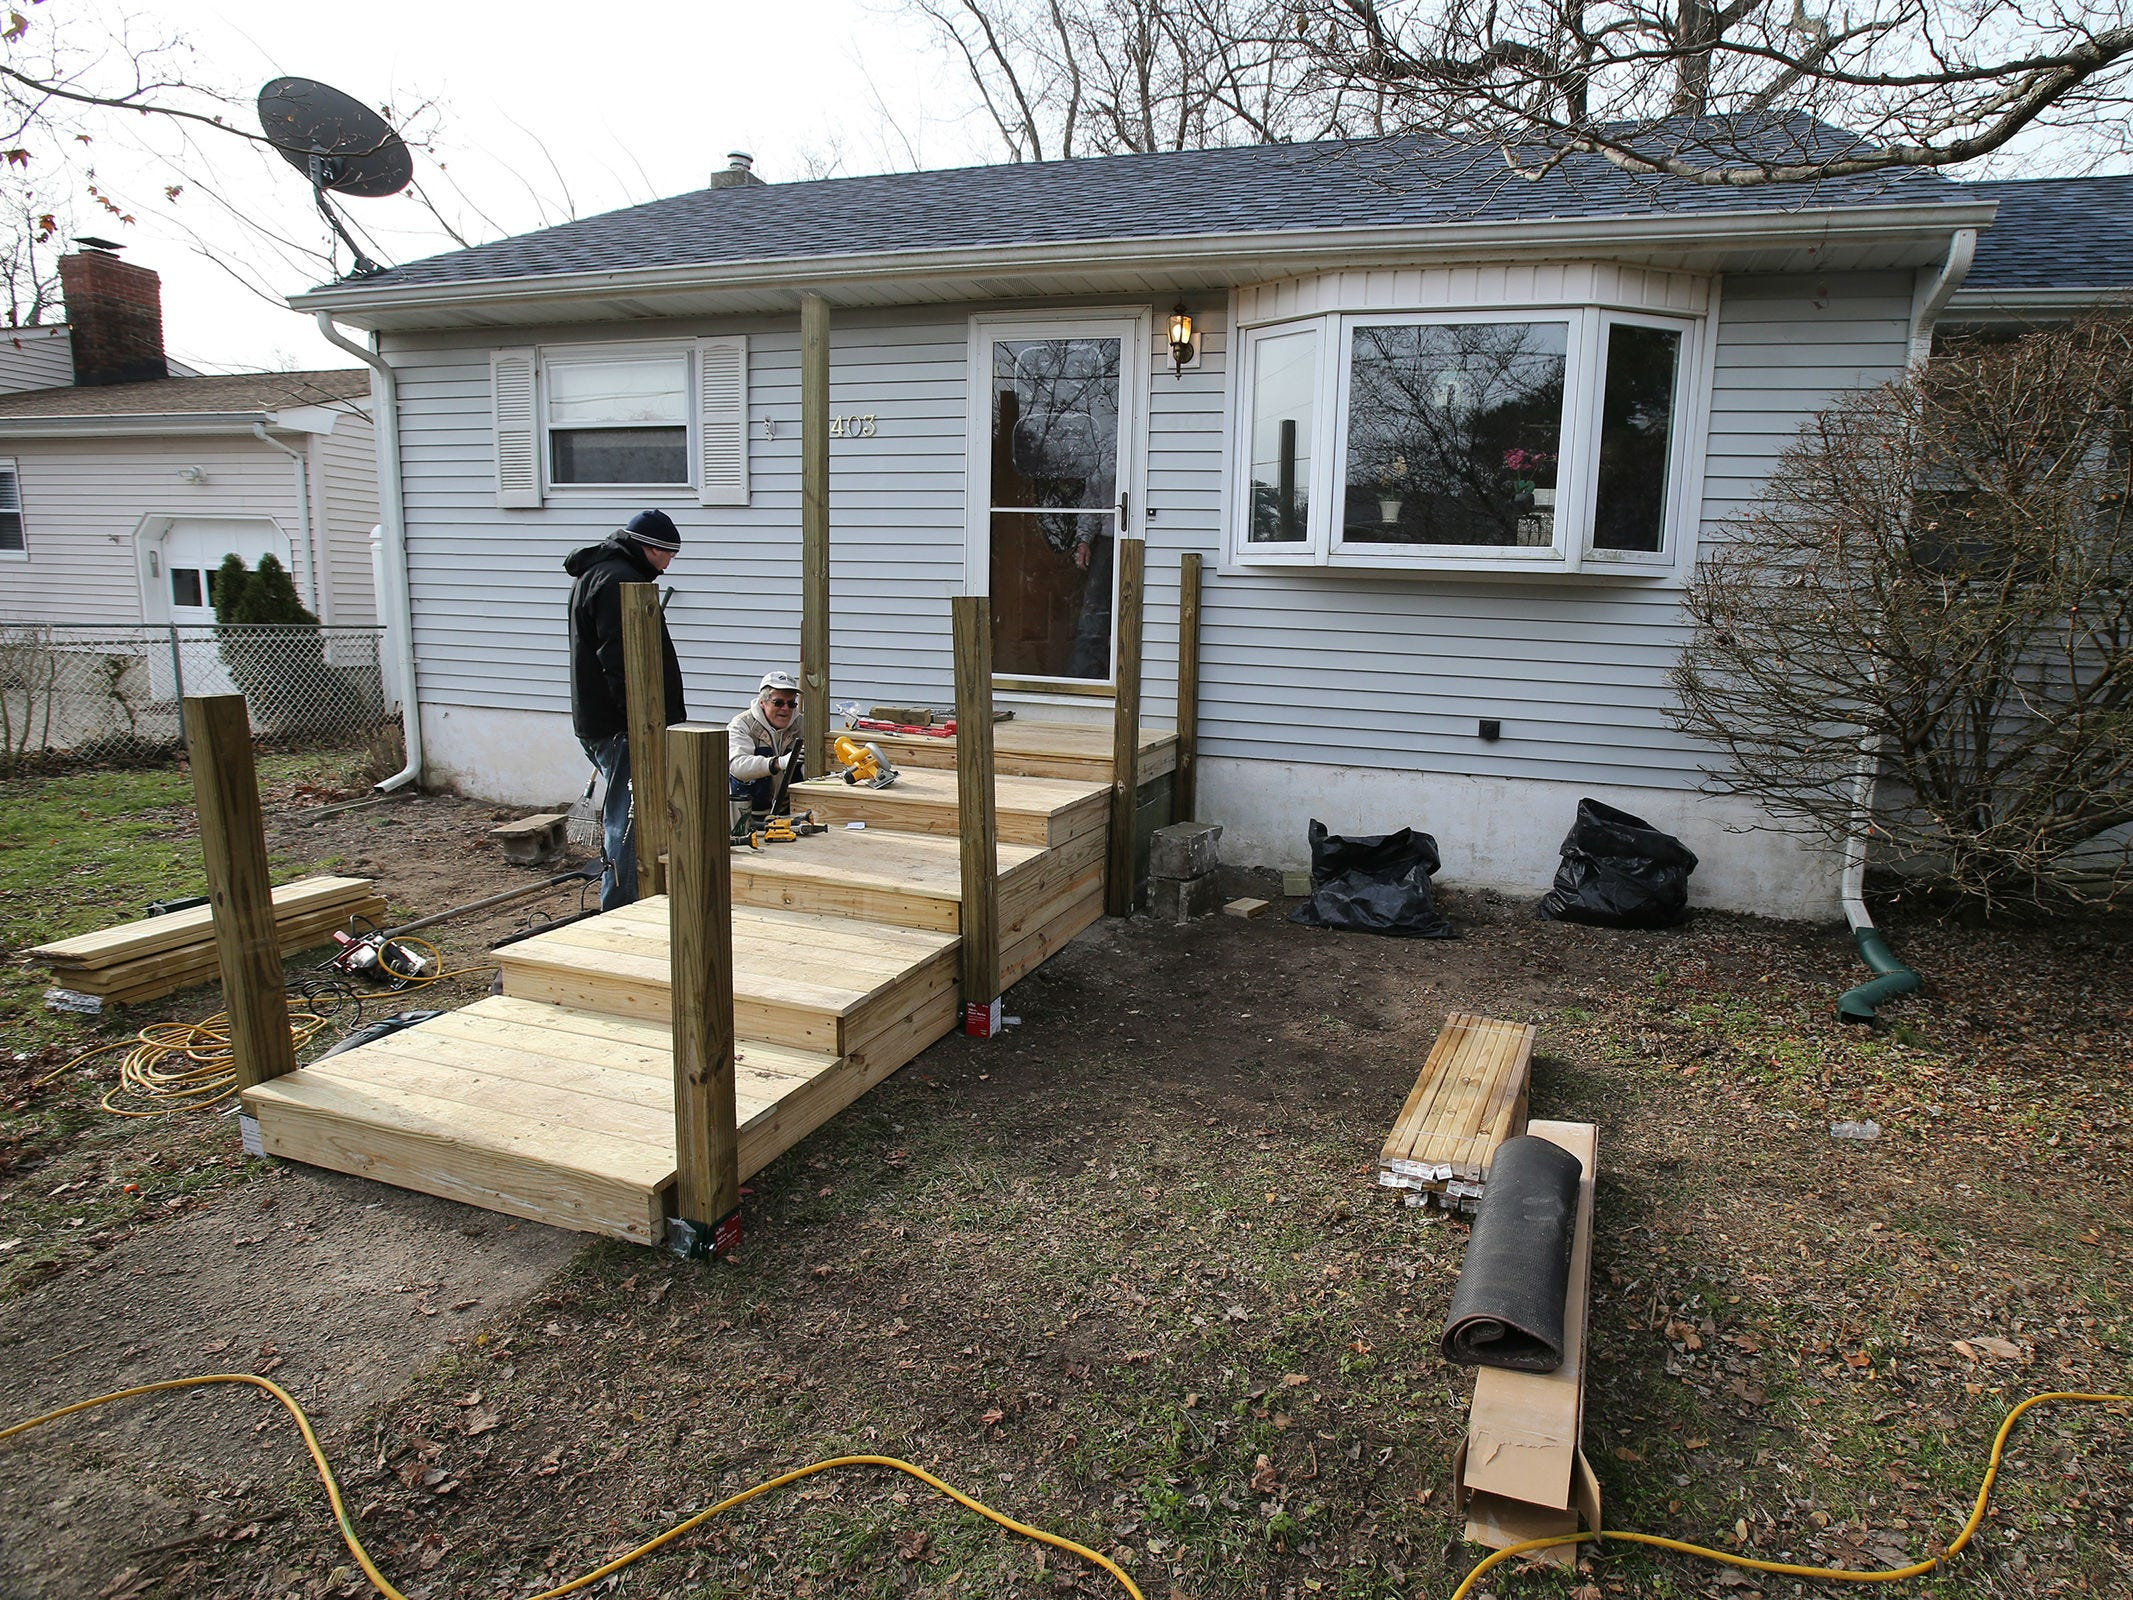 Northern Ocean Habitat for Humanity works on the home of Korean War veteran Walter Brandon, 85, and wife Patricia, which is their 200th home repair, in Brick, NJ Thursday, December 6, 2018.